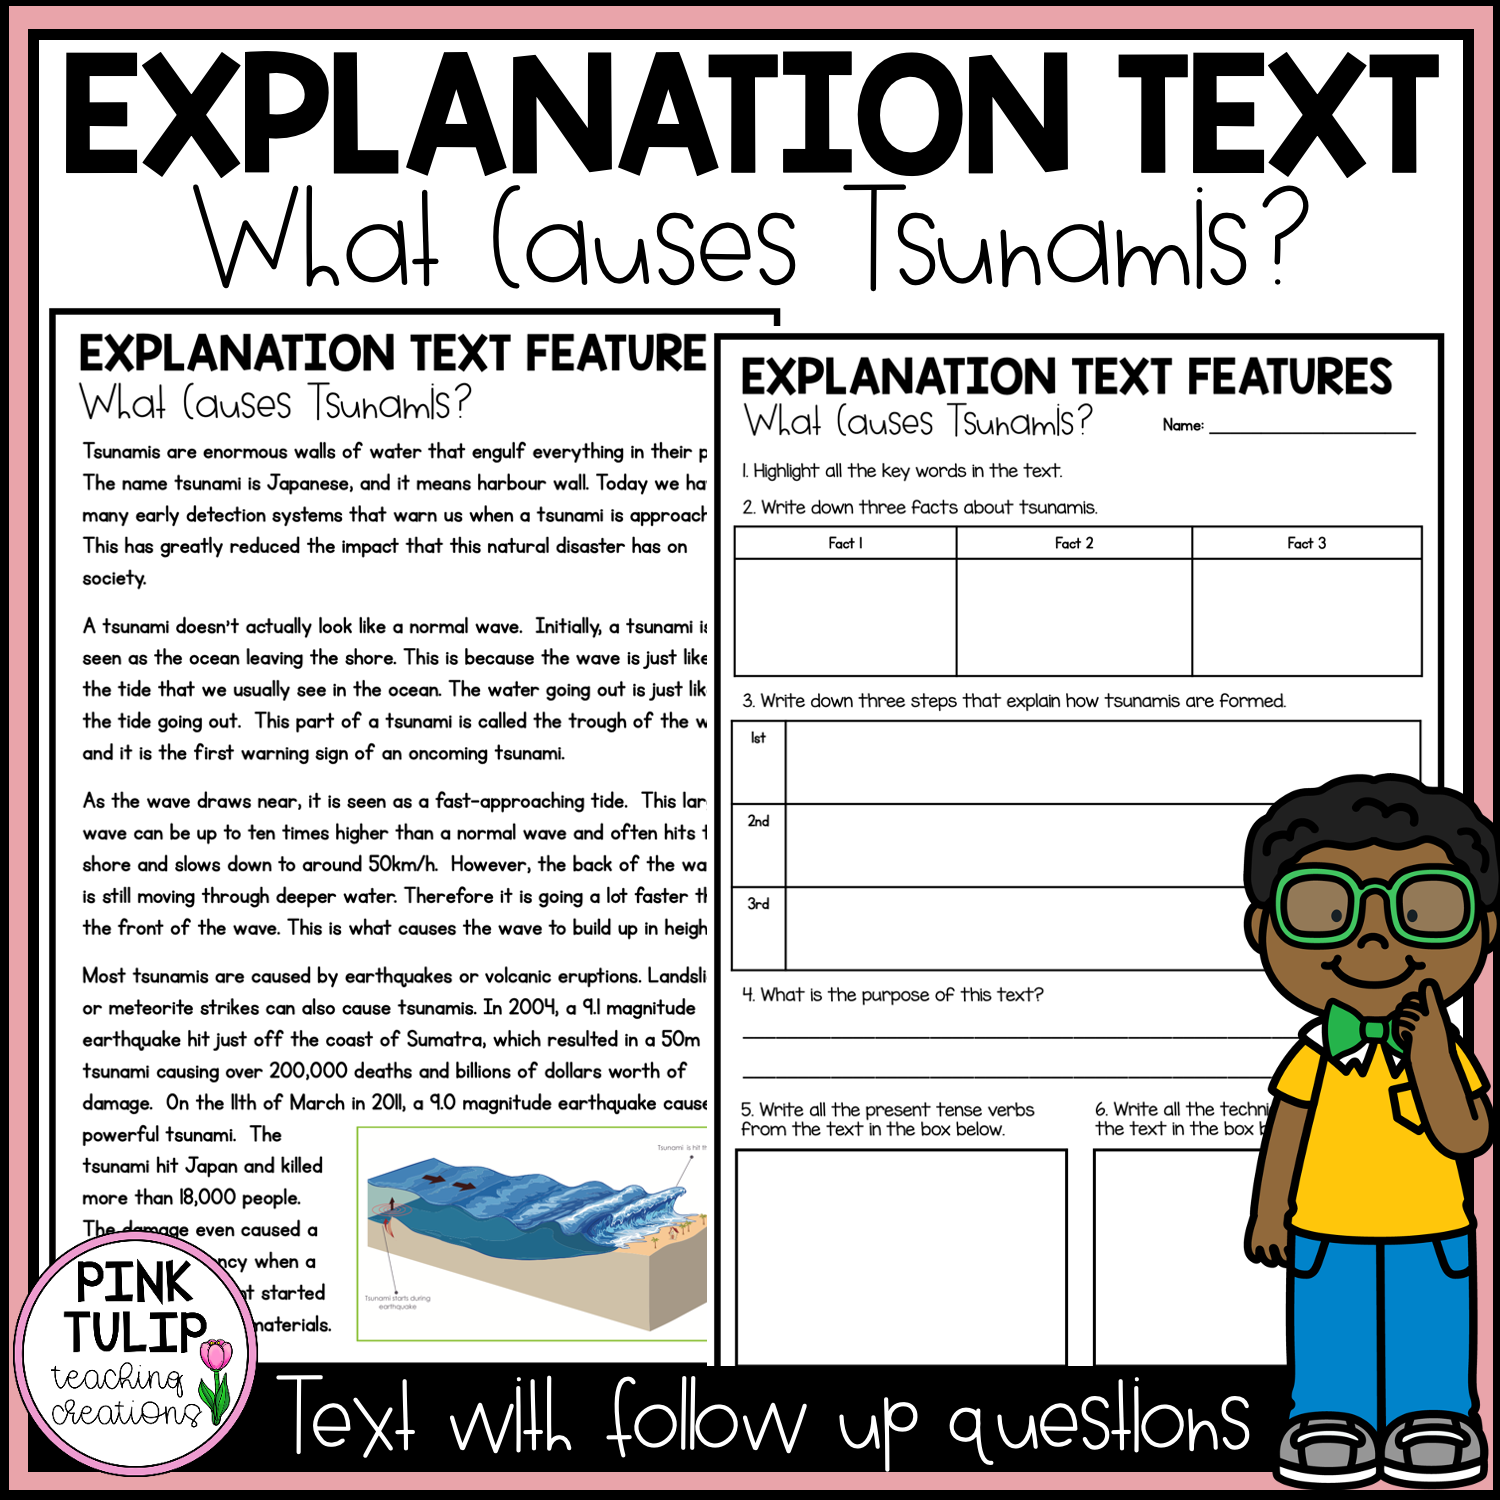 small resolution of Explanation Text - What Causes Tsunamis?   Explanation text